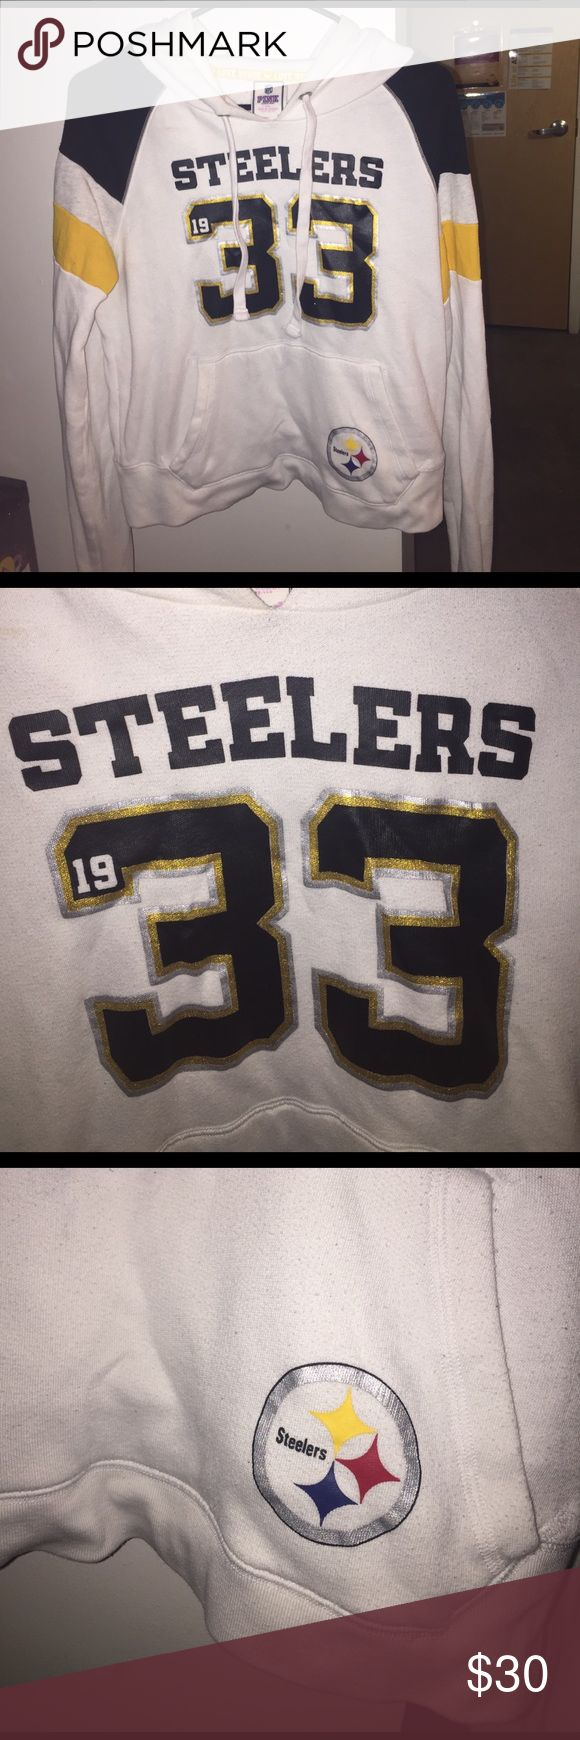 VS PINK STEELERS HOODIE Perfect condition limited edition Victoria's Secret steelers hoodie. Size L but has a cropped fit. So cute and cozy PINK Victoria's Secret Tops Sweatshirts & Hoodies